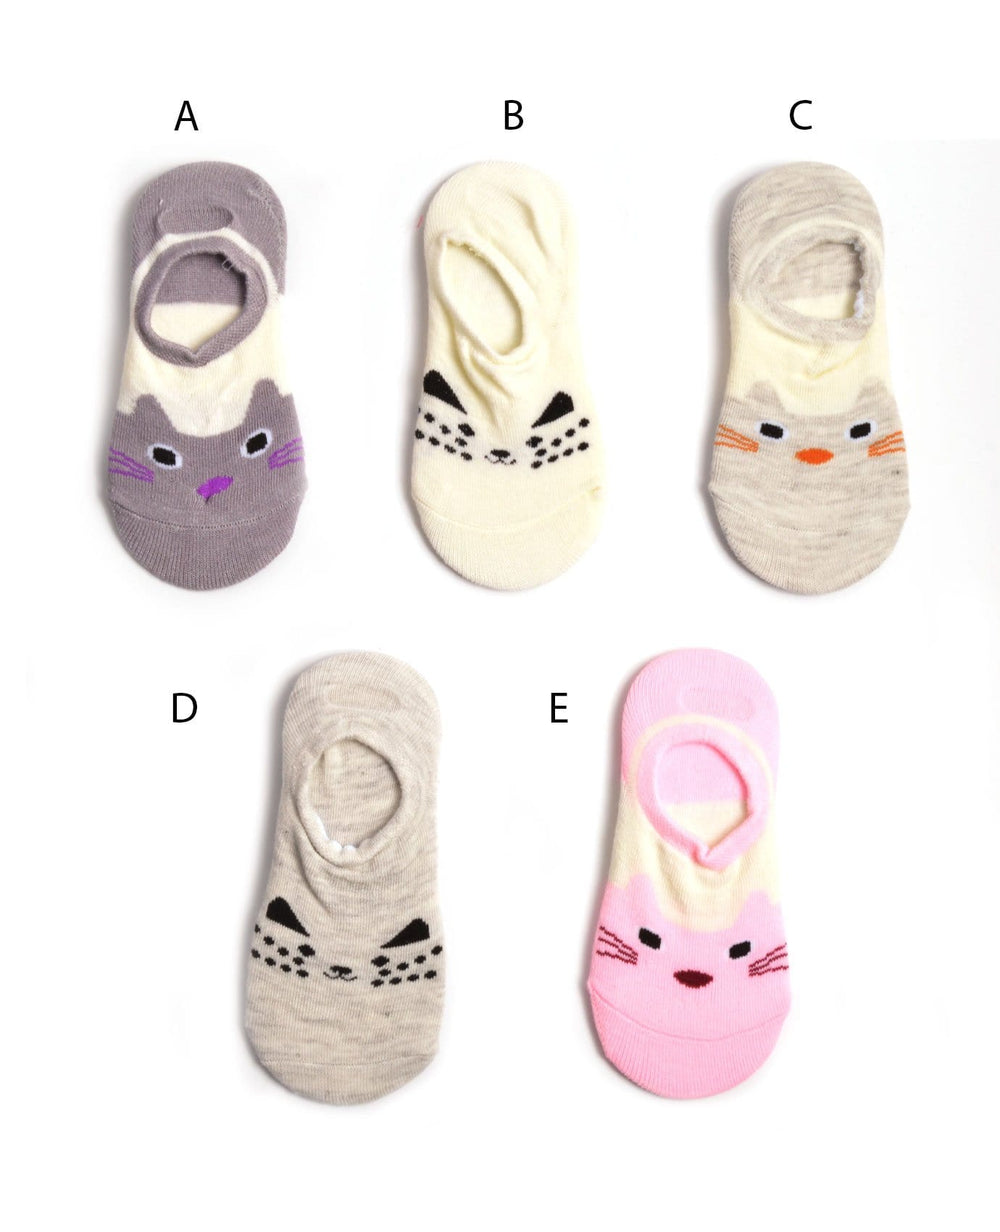 Kitty kids socks